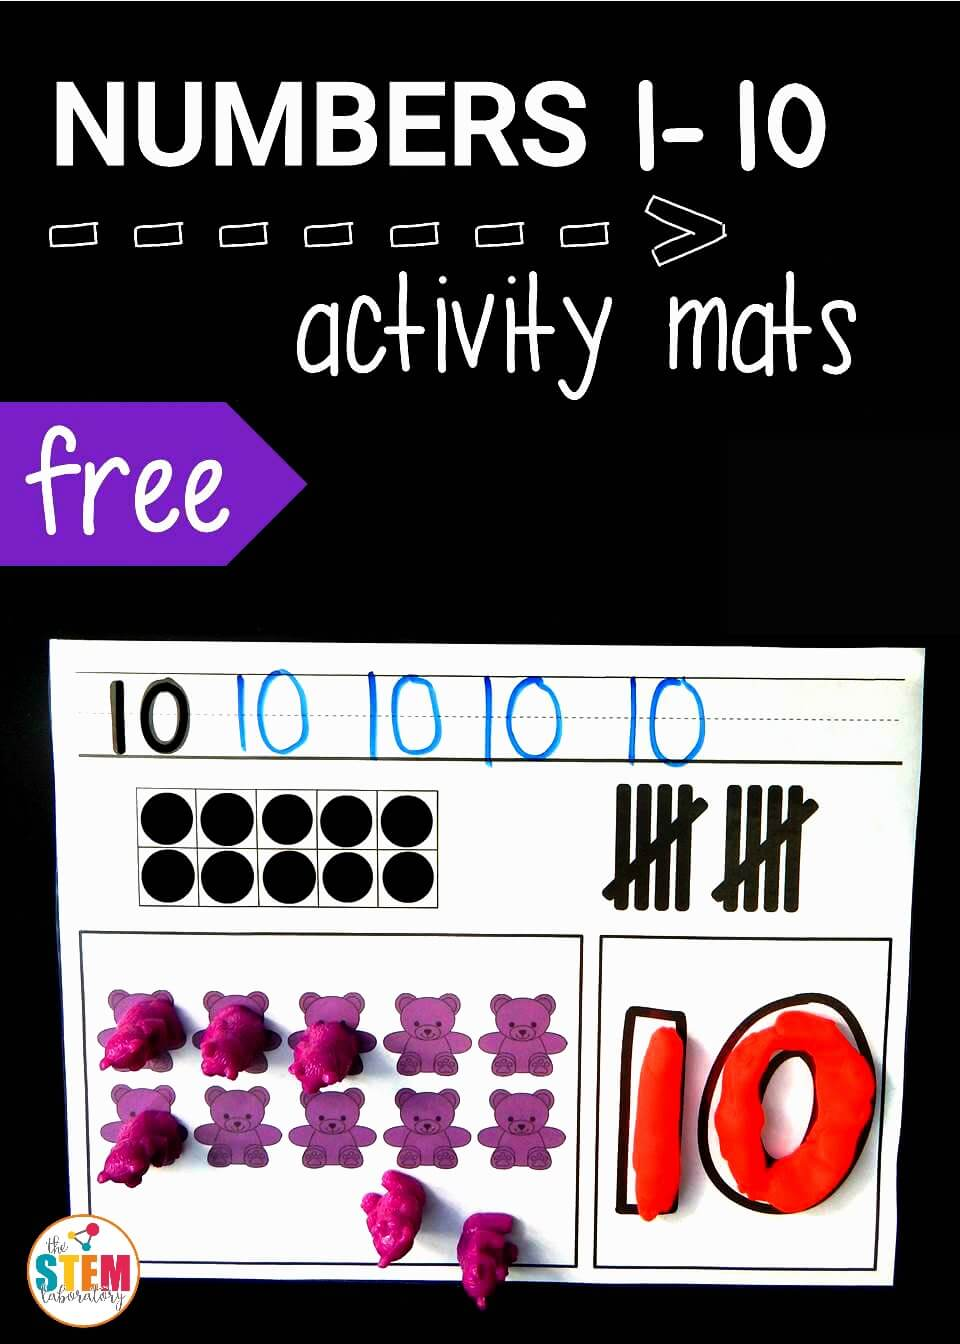 Numbers 1 10 Activity Mats The Stem Laboratory